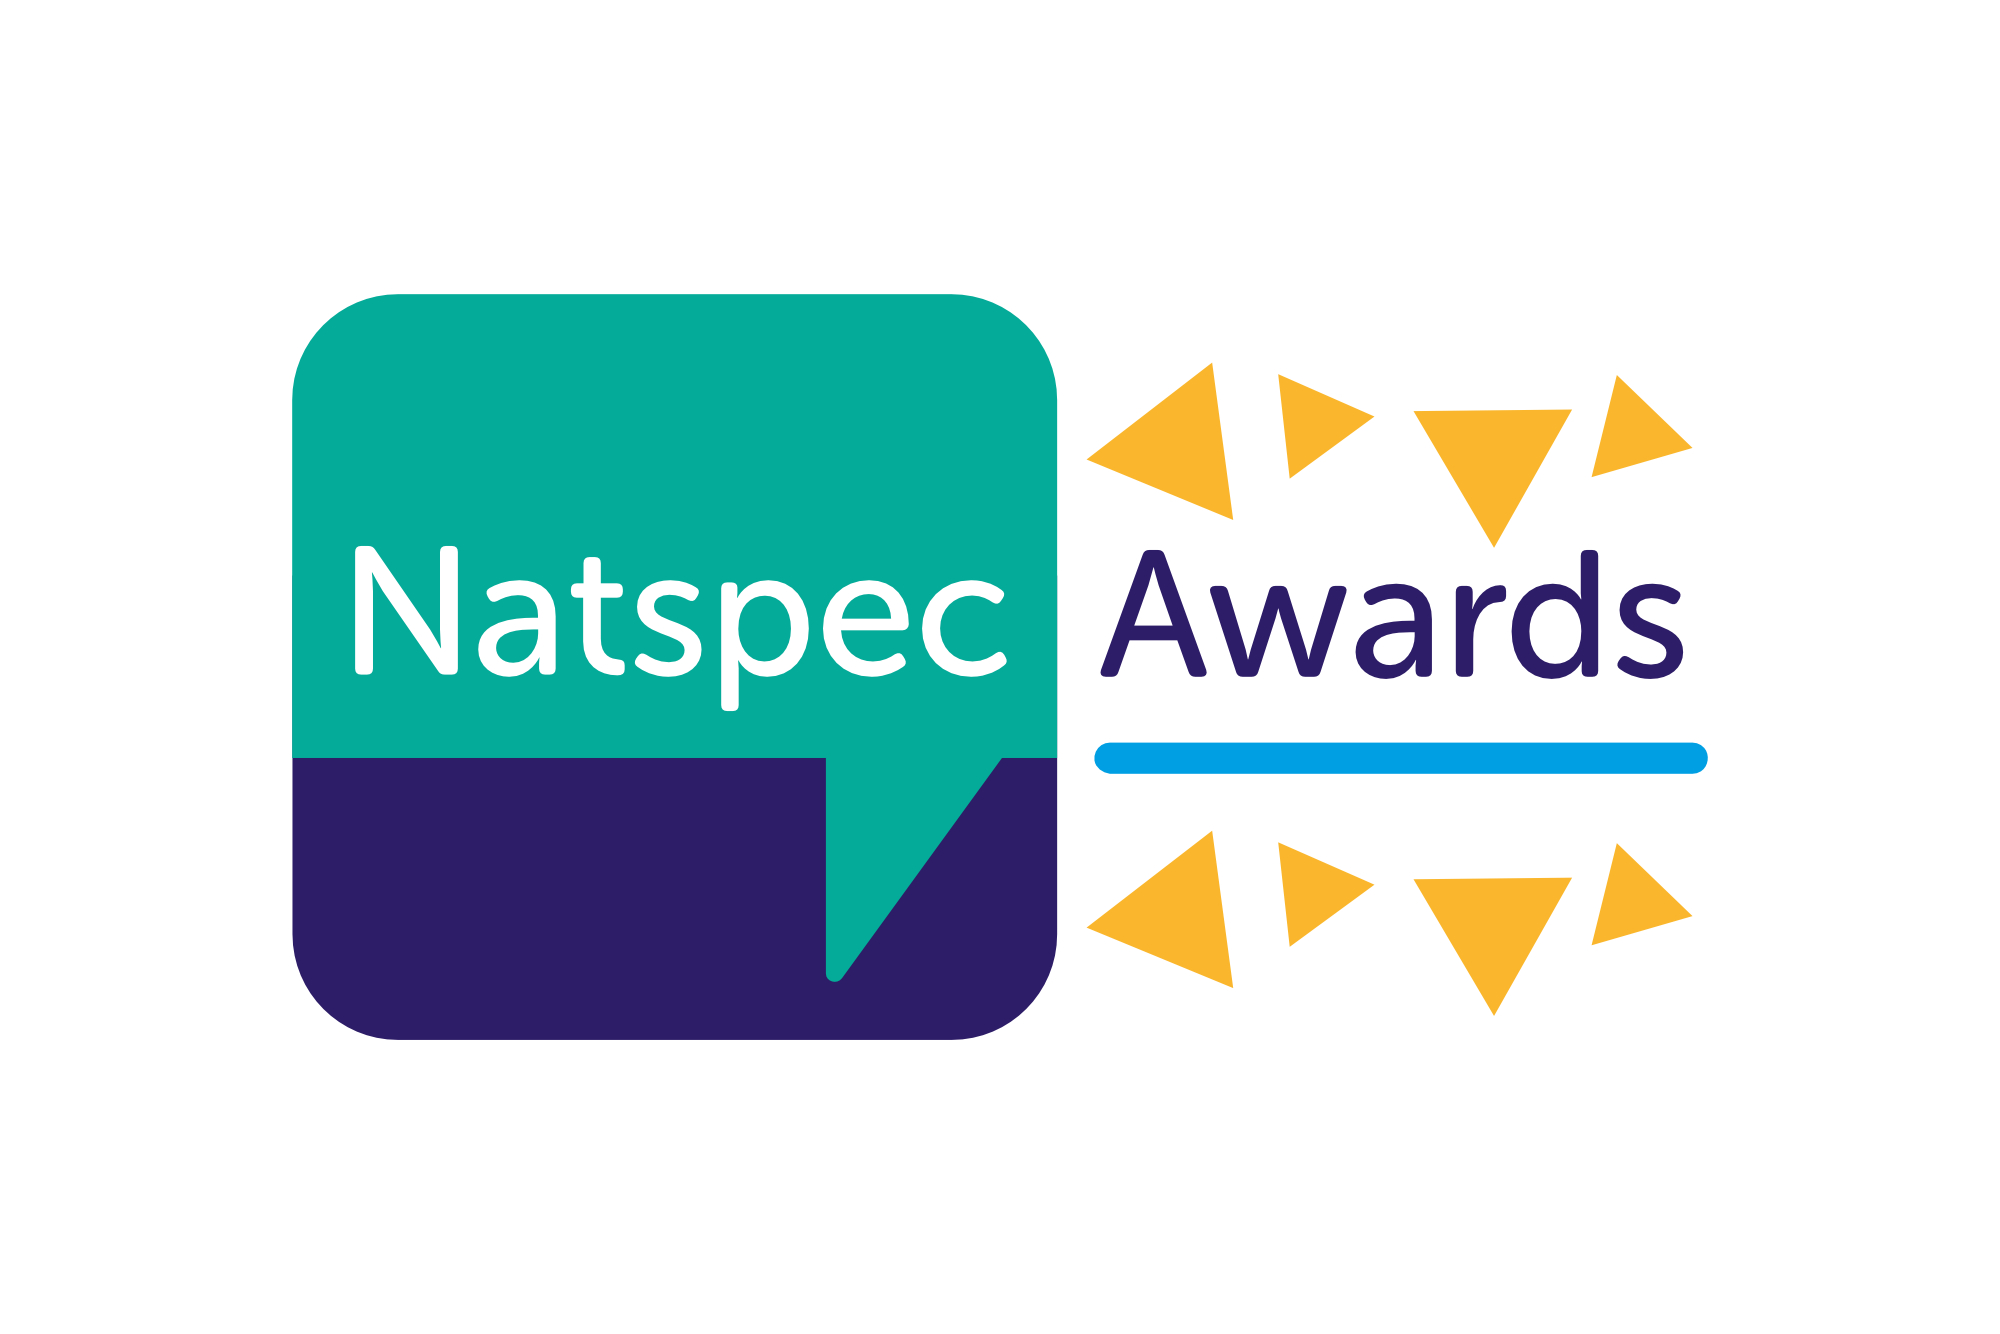 Natspec Awards logo